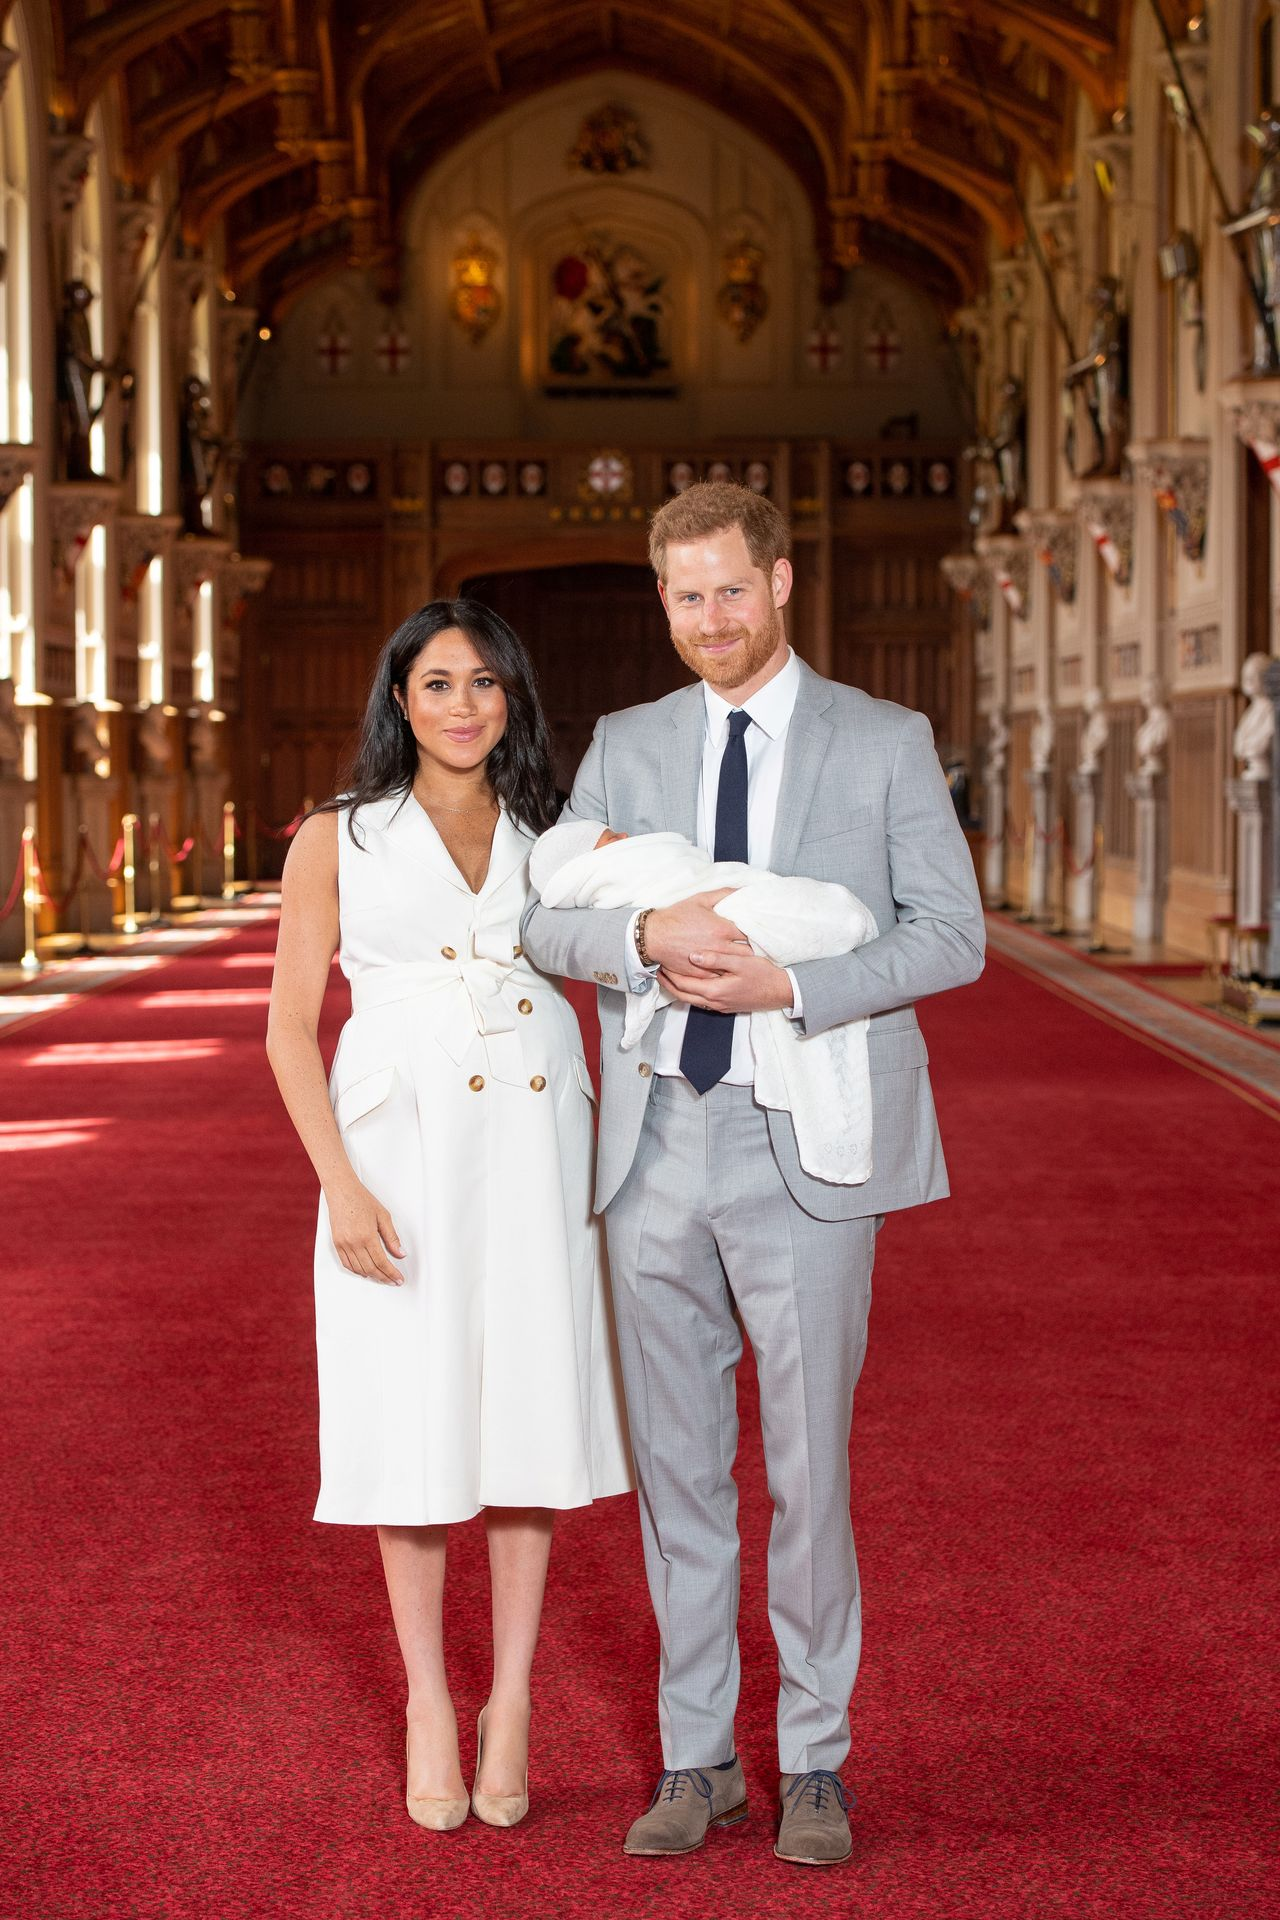 Britain's Prince Harry and Meghan, Duchess of Sussex are seen with their baby son at Windsor Castle